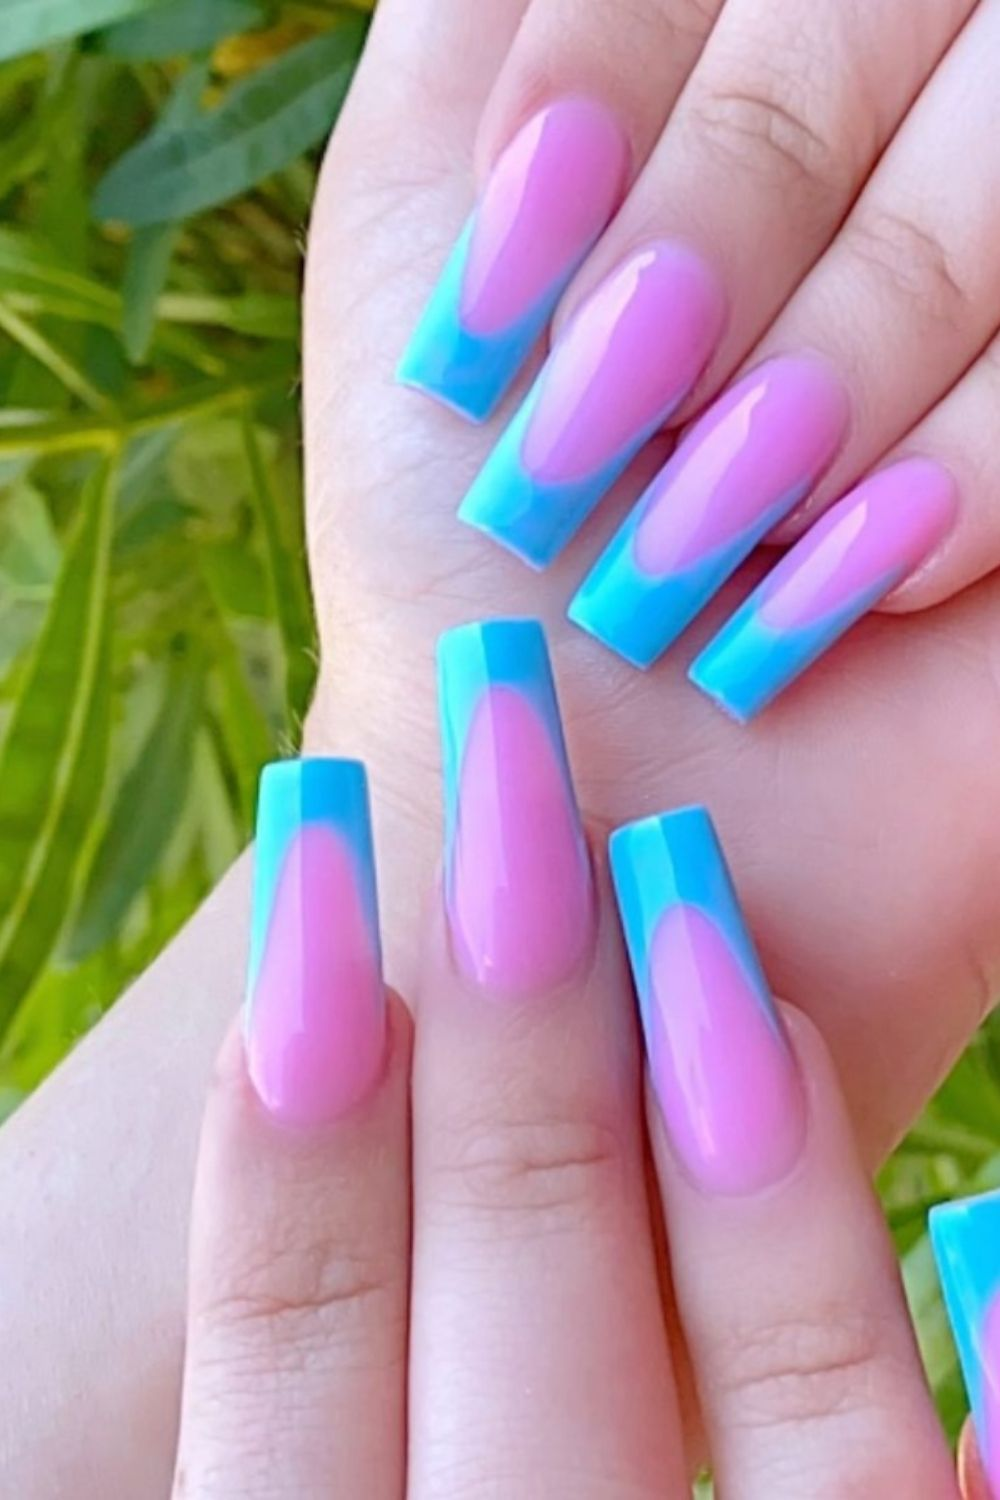 45 Stunning Coffin Nails Design Ideas For Summer nails 2021